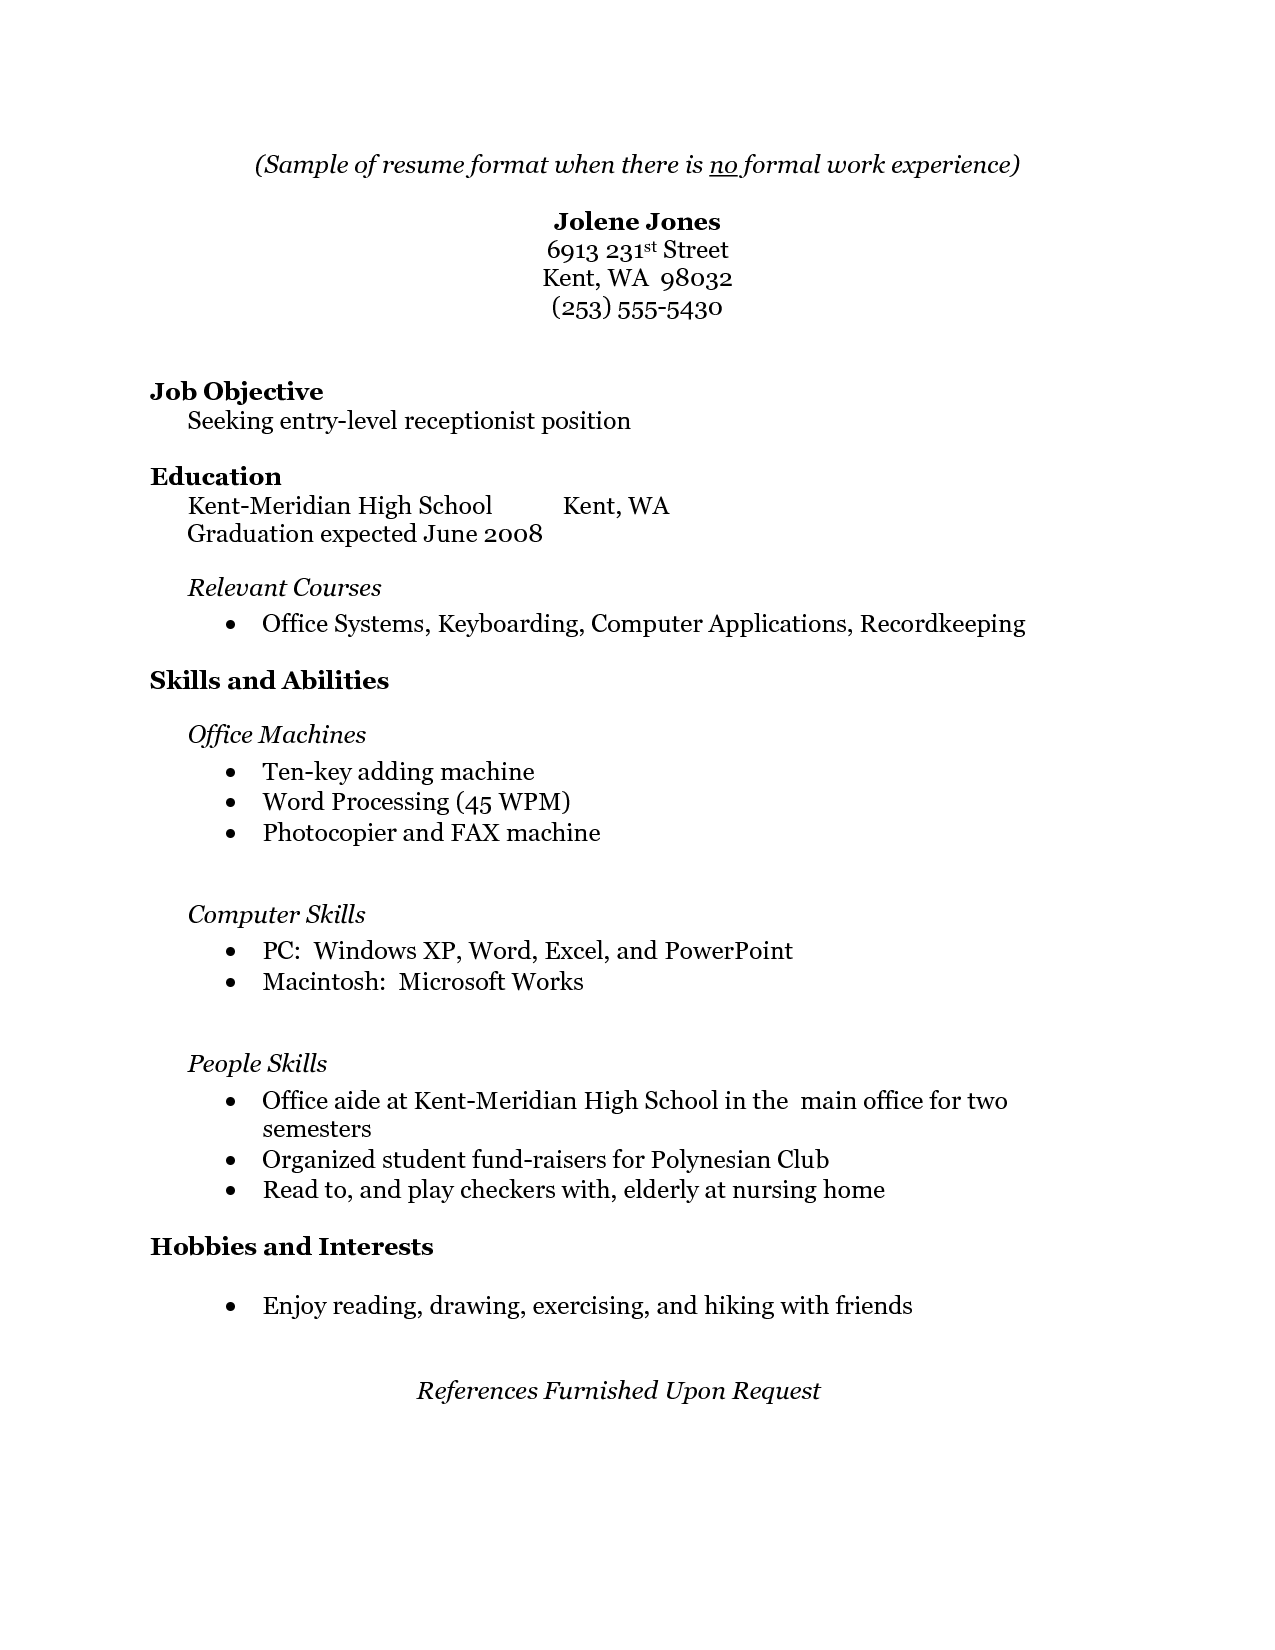 Sample Resume For High School Student With No Experience Job Resume No Experience Examples Http Www